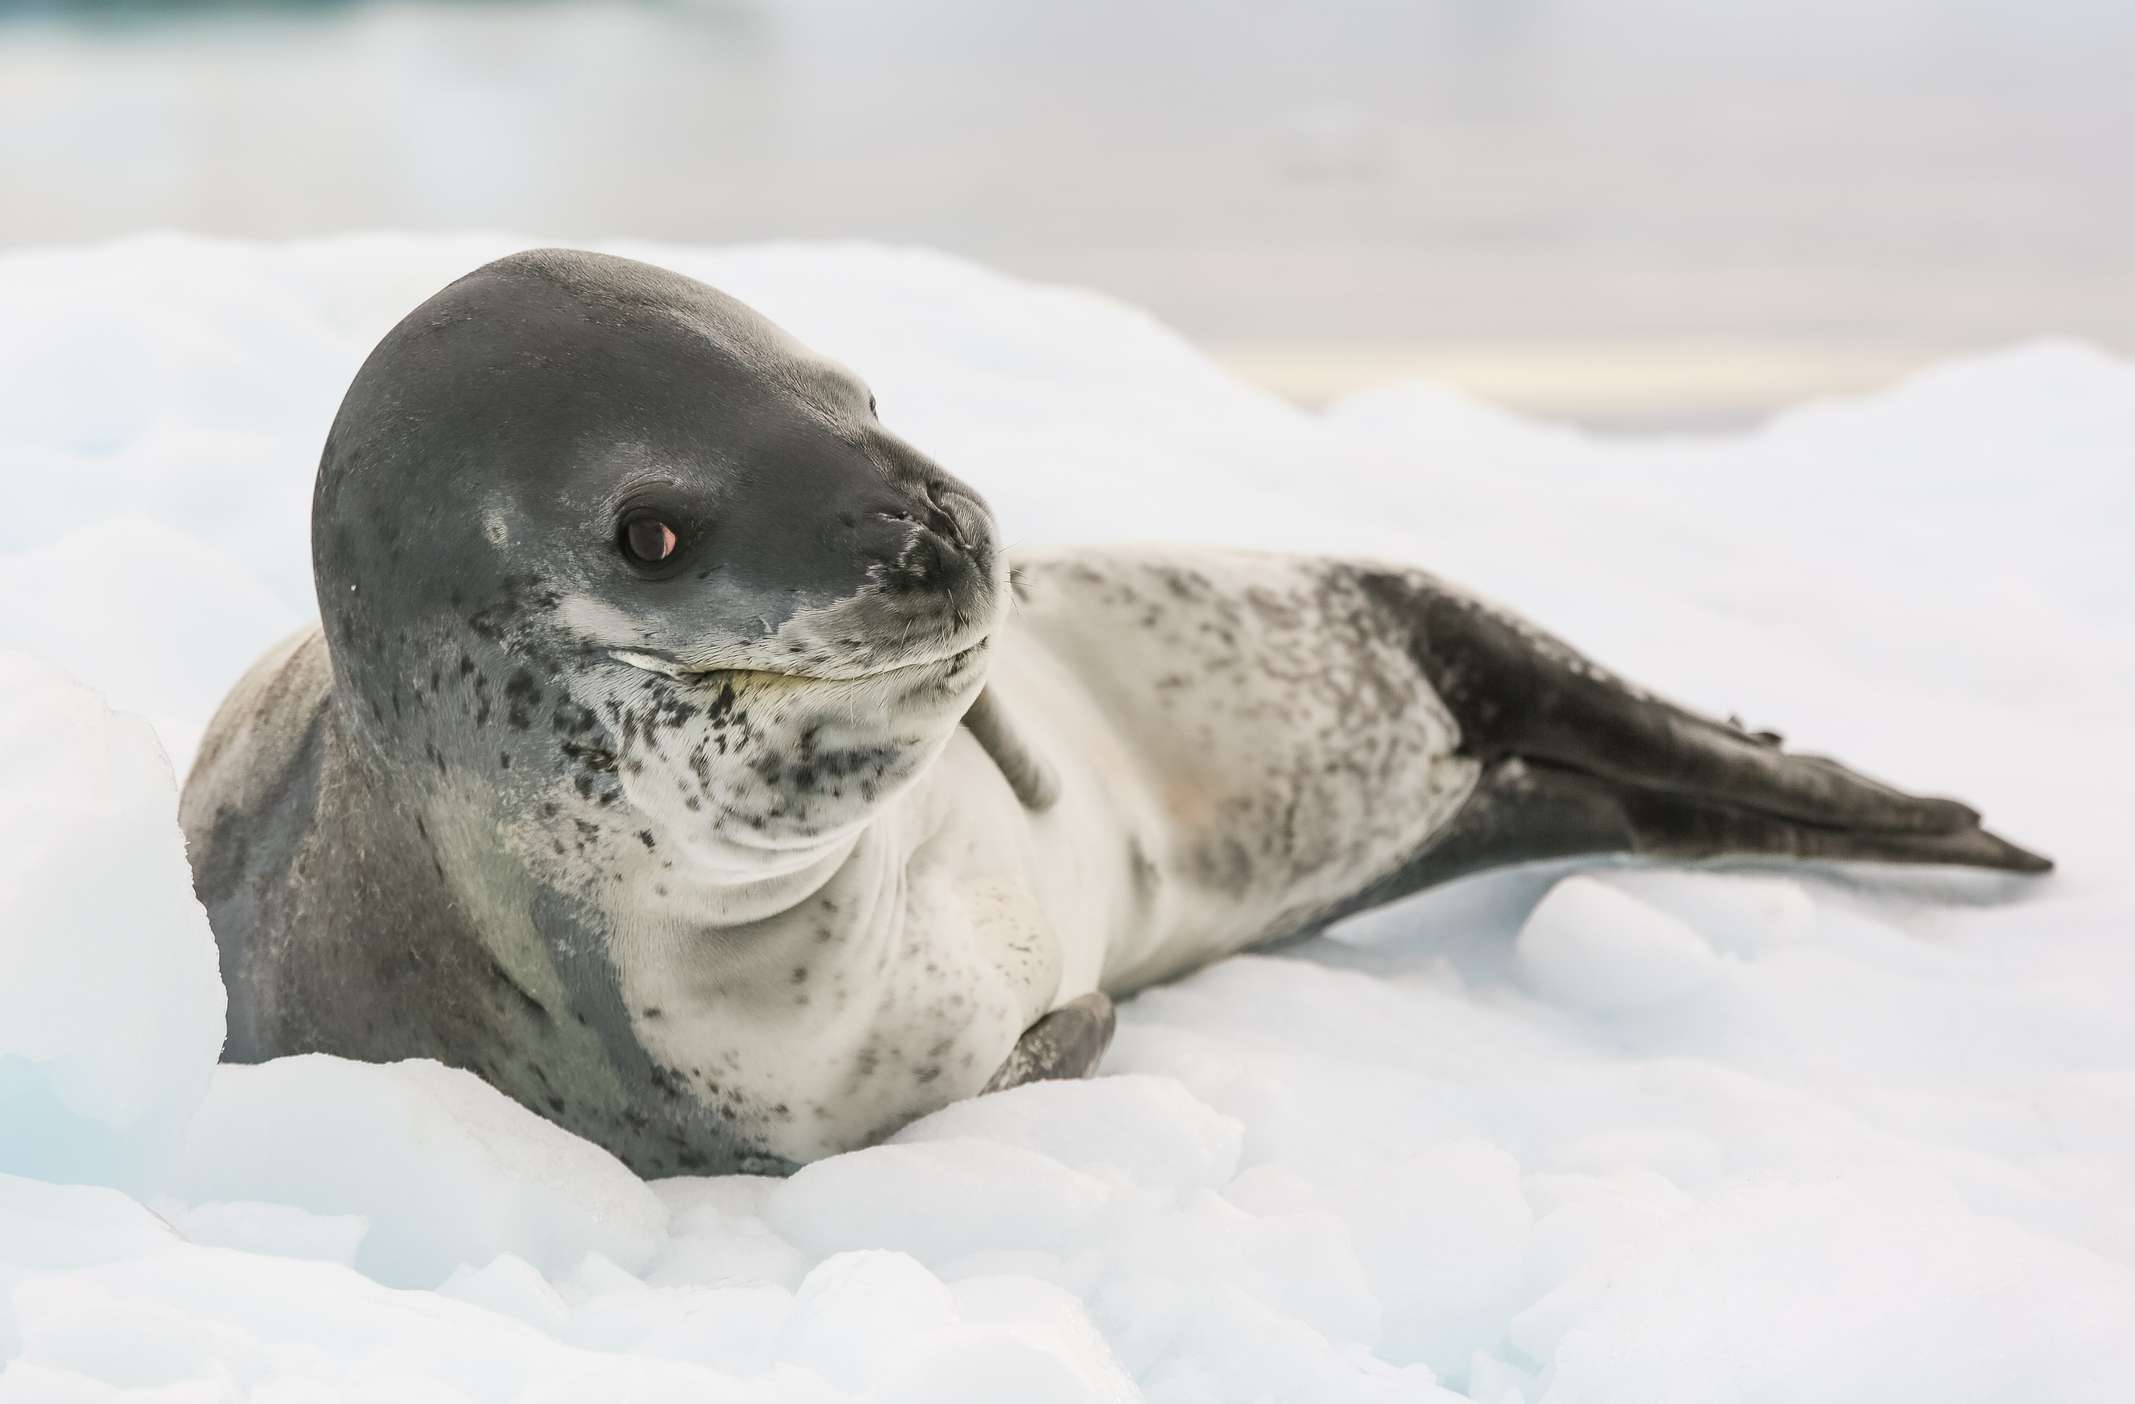 Leopard seal lying on ice with water in background.